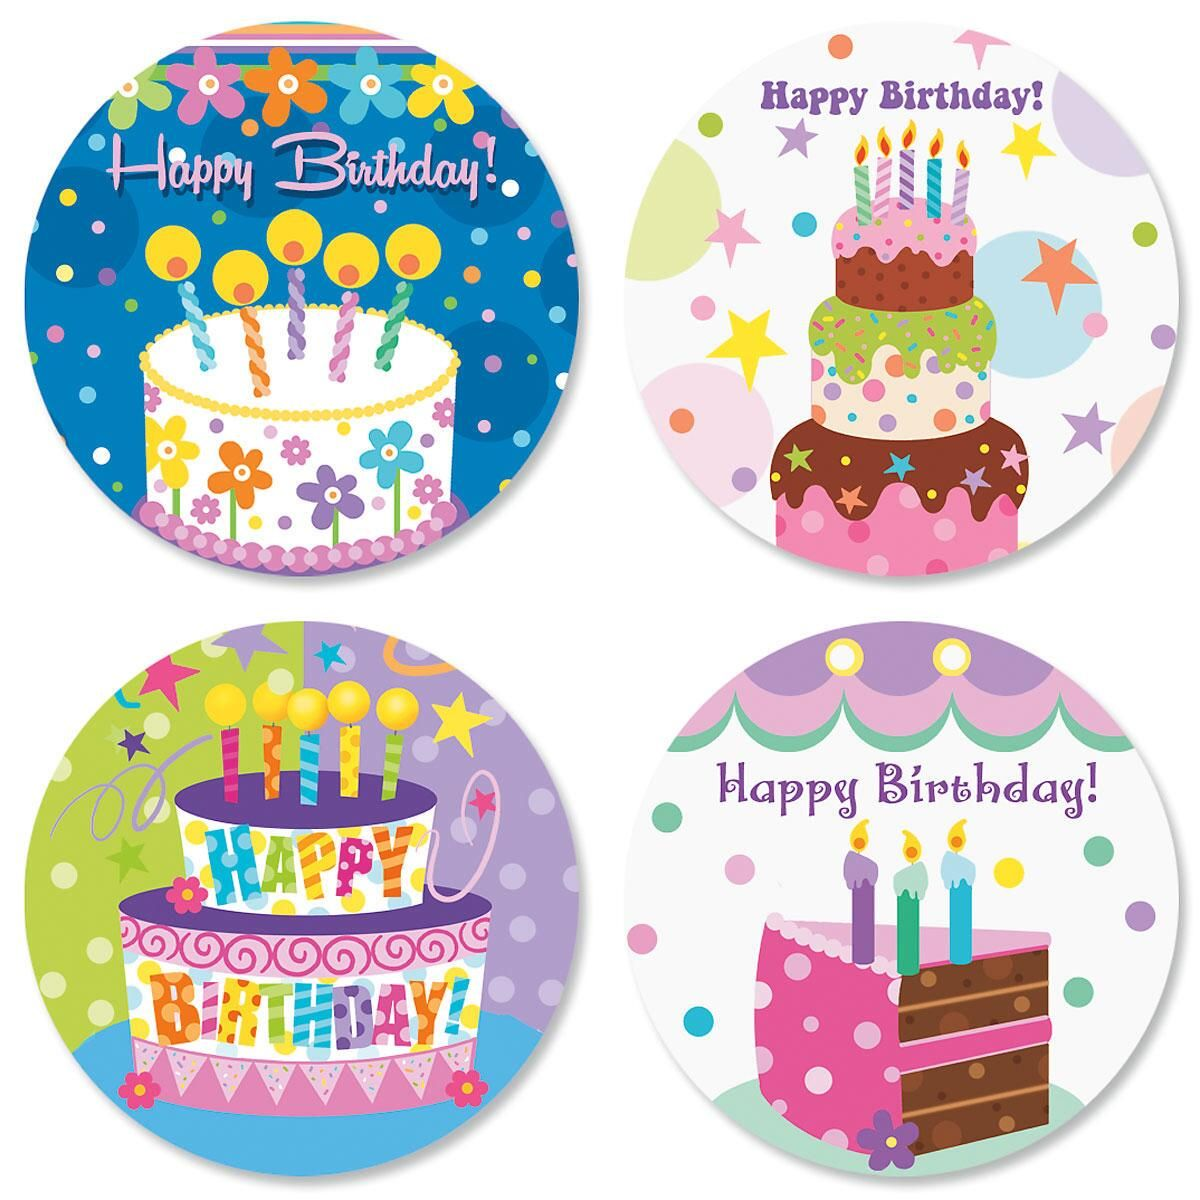 Cake Celebration Birthday Seals